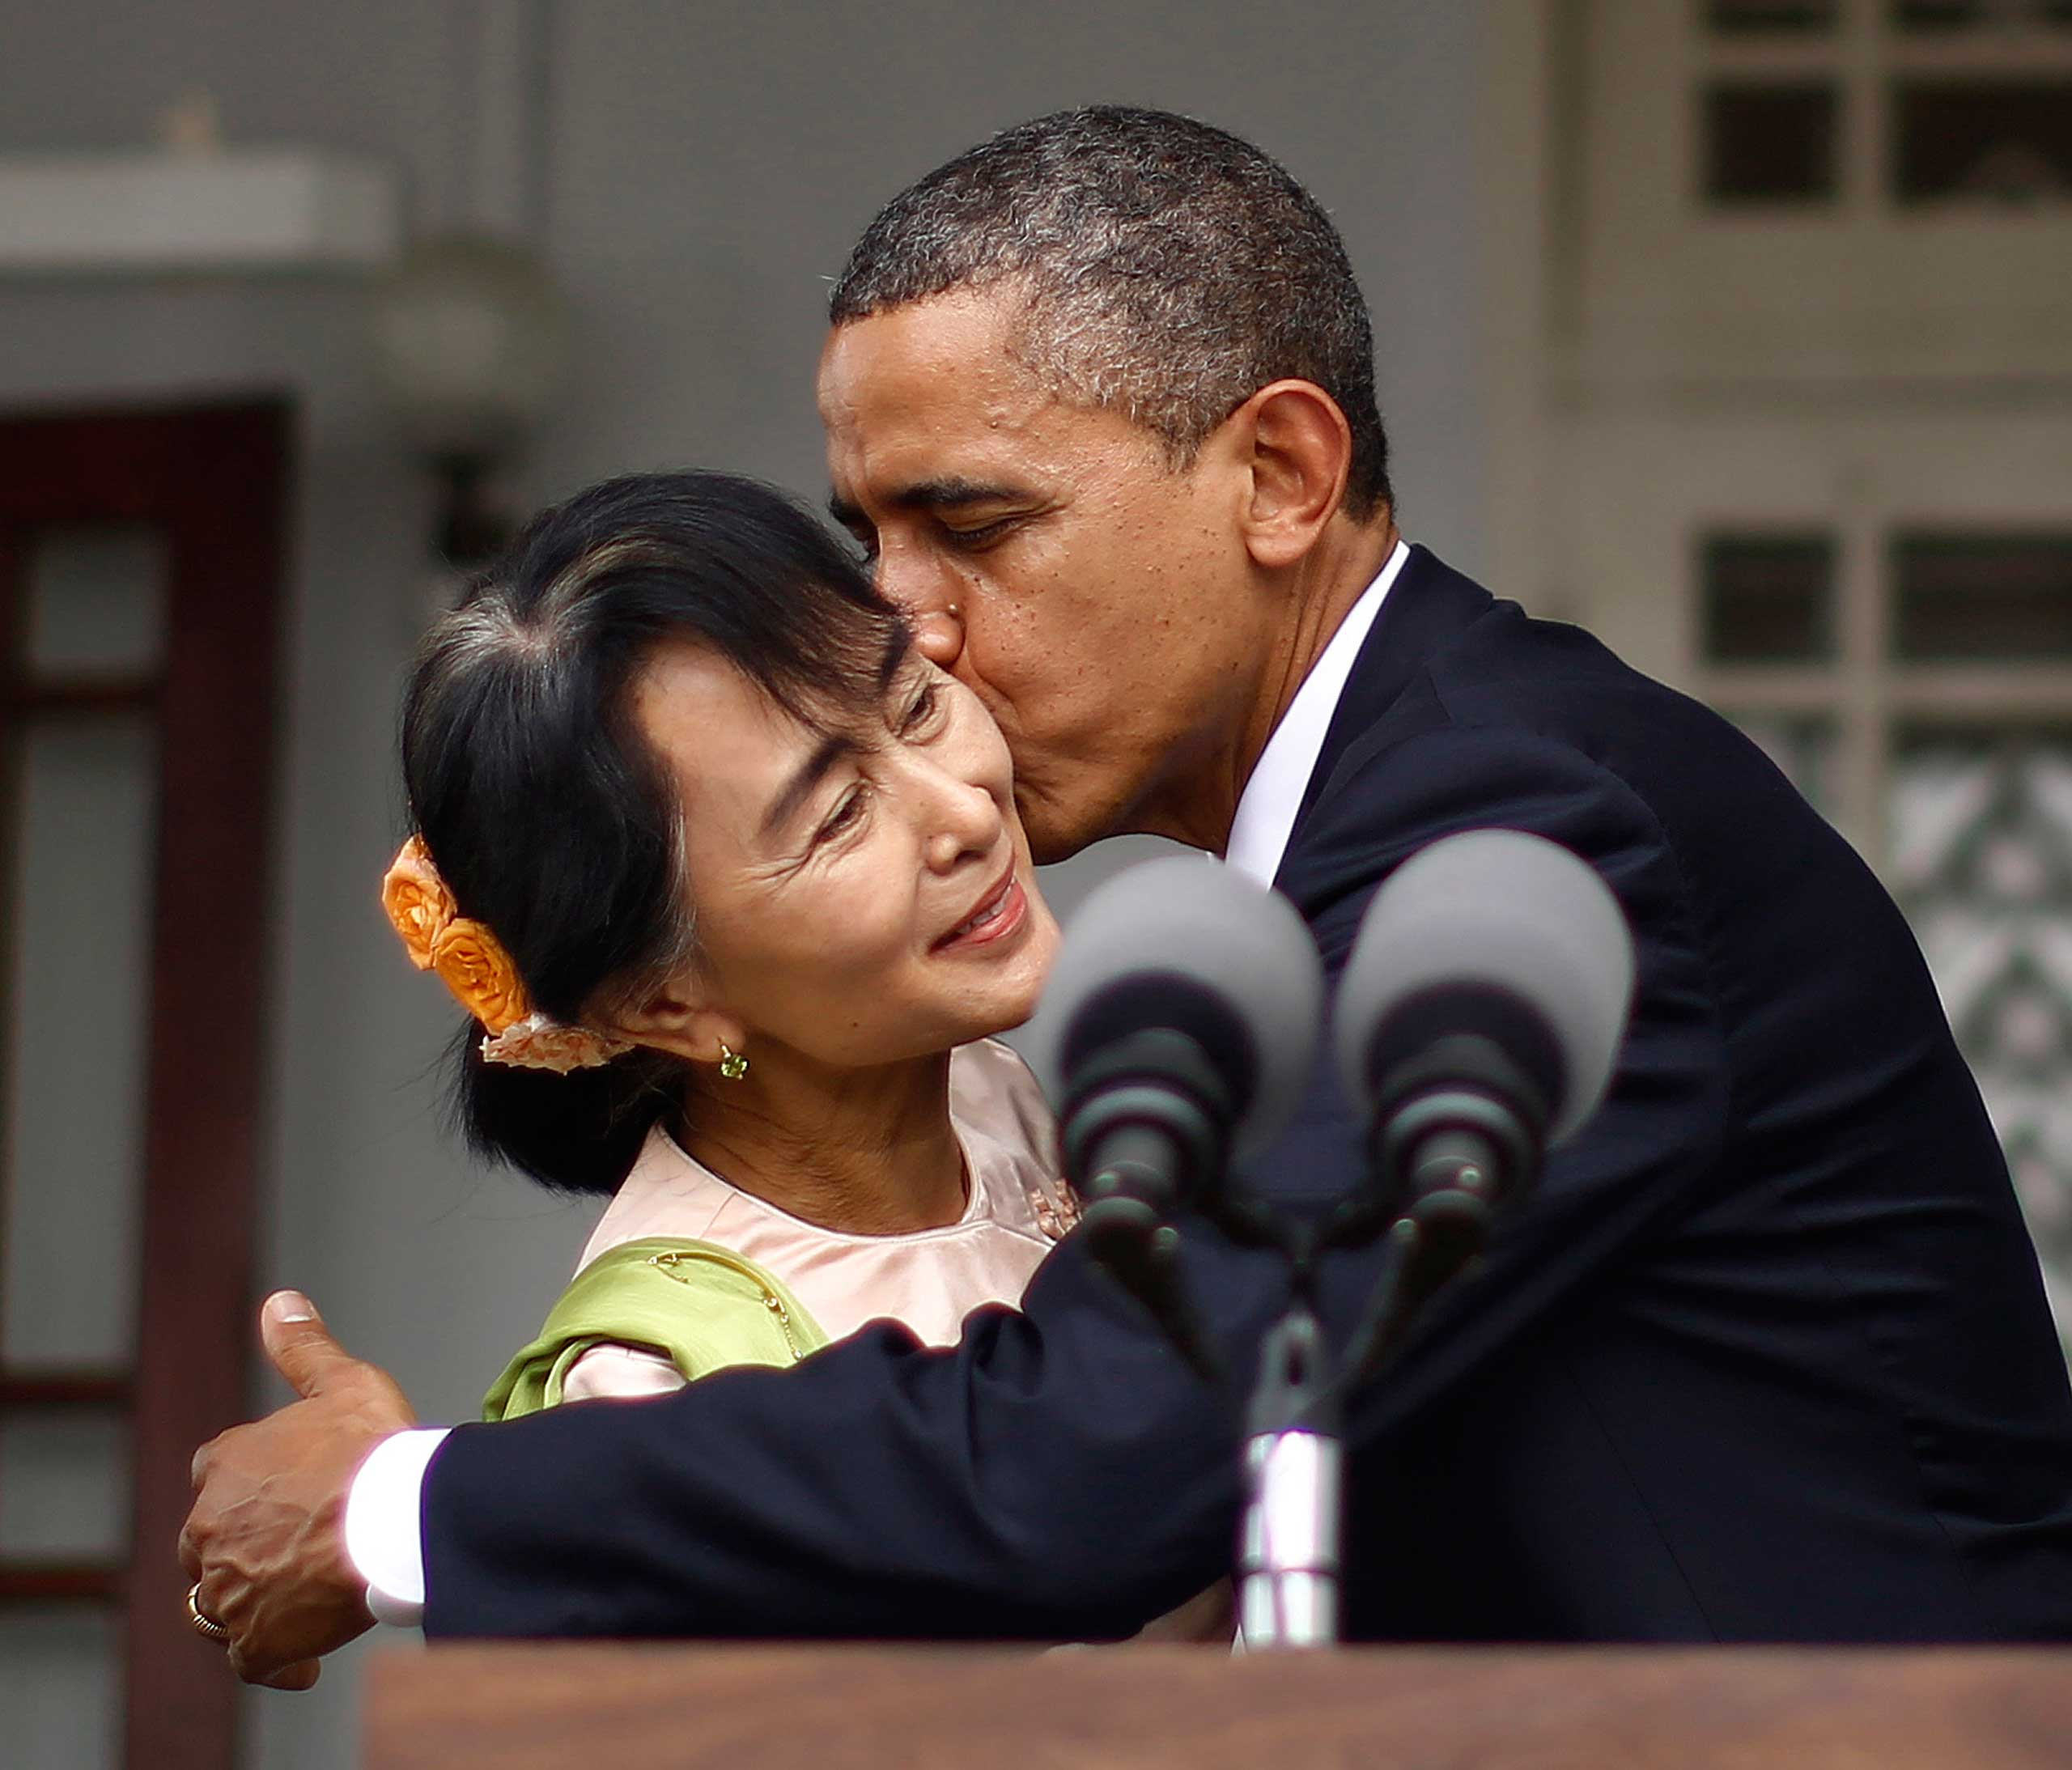 Though Obama's peck on Burmese democracy activist Aung San Suu Kyi's cheek was a pro-democracy smooch, her visible recoil from the kiss indicates that he may have been better off with a handshake.